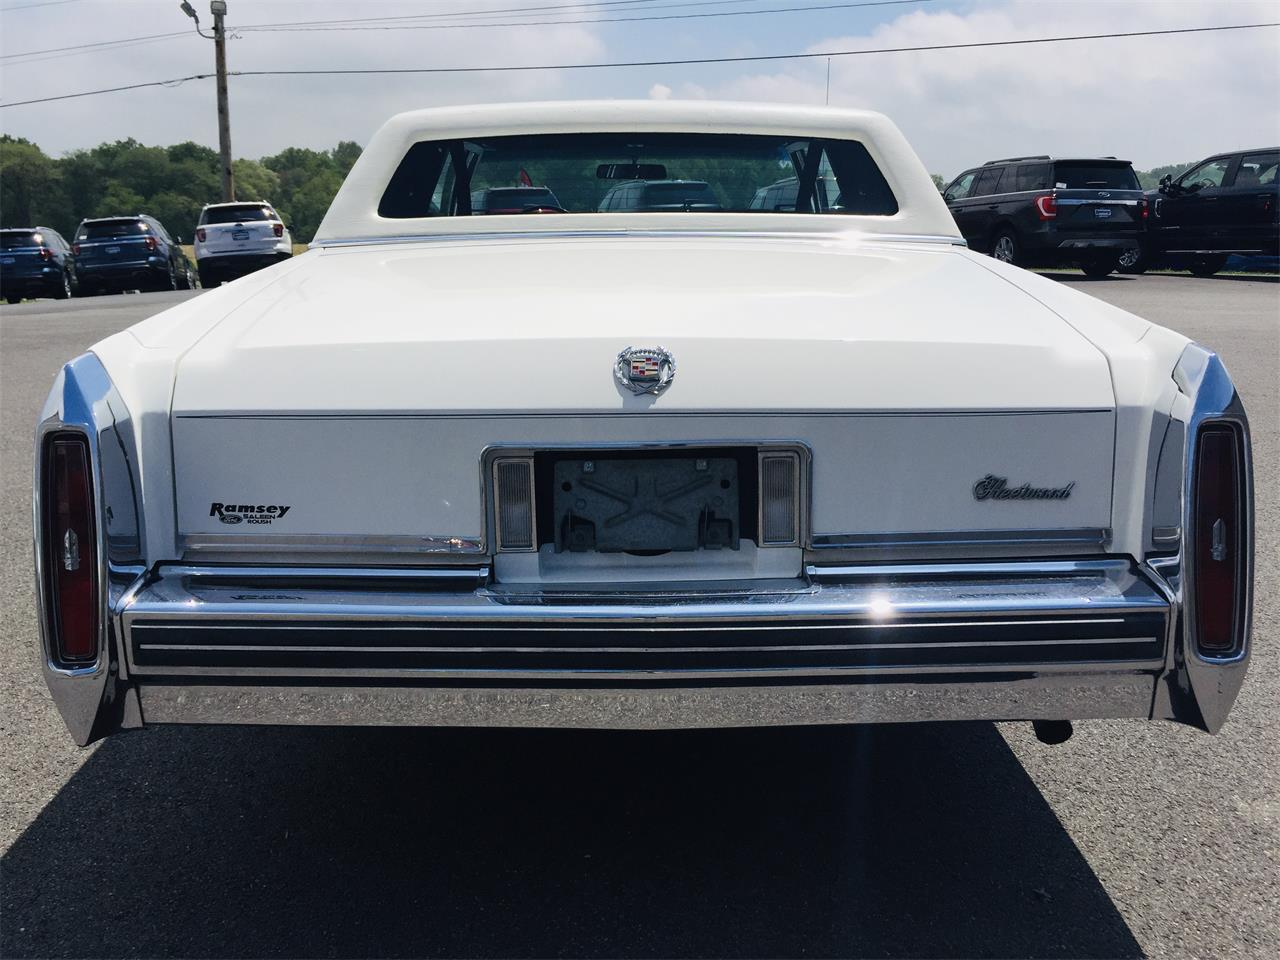 1981 Cadillac Fleetwood Brougham (CC-1222086) for sale in Mill Hall, Pennsylvania